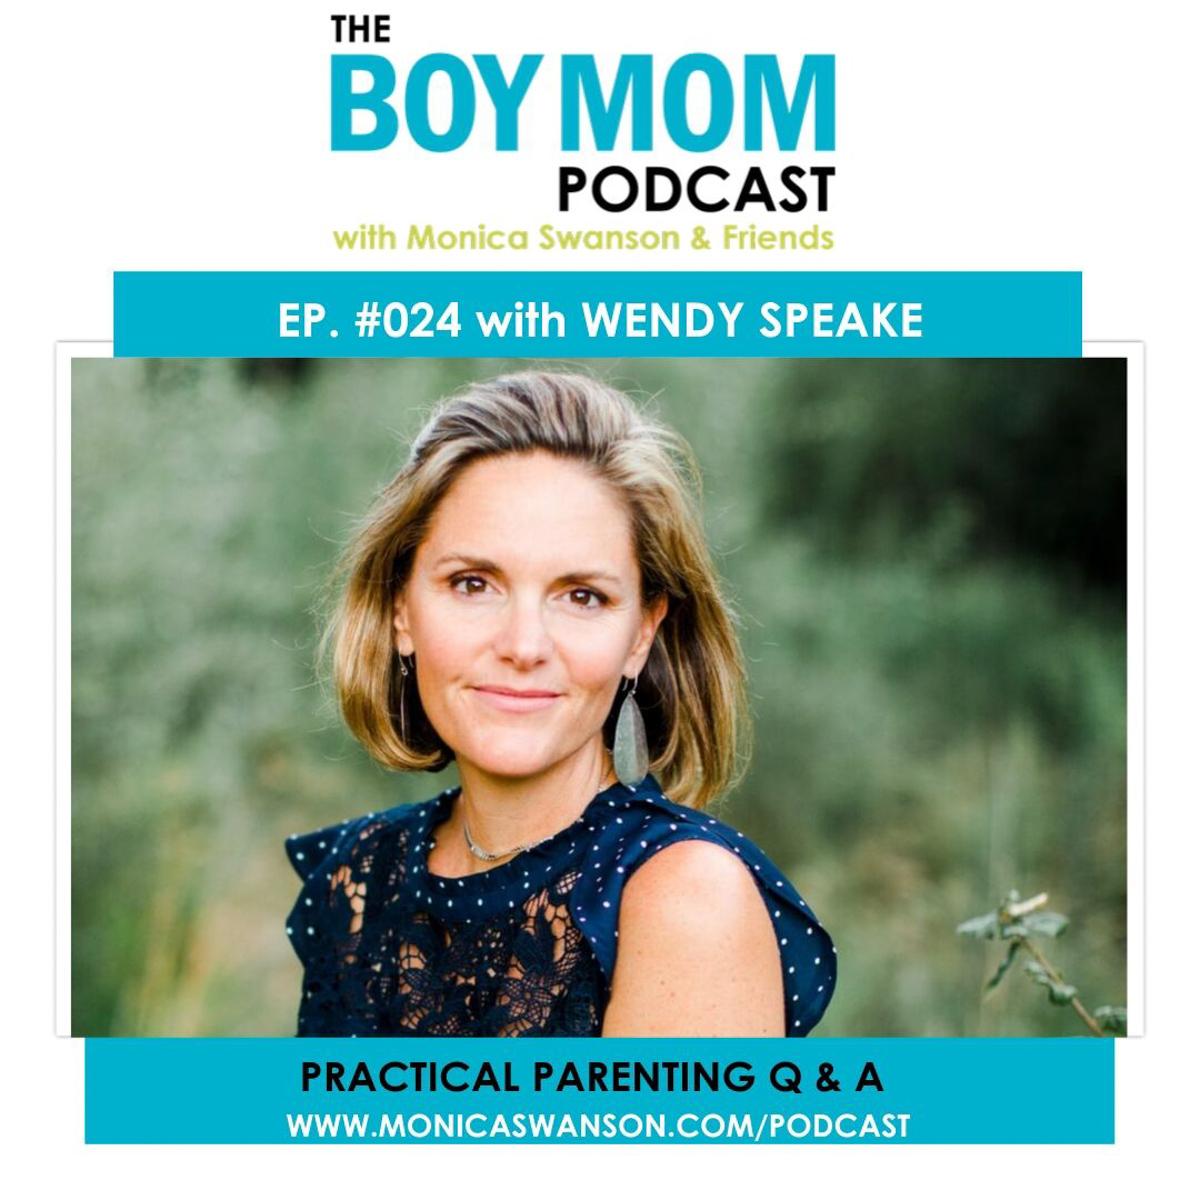 Practical Parenting Q & A {Episode 024 with Wendy Speake}